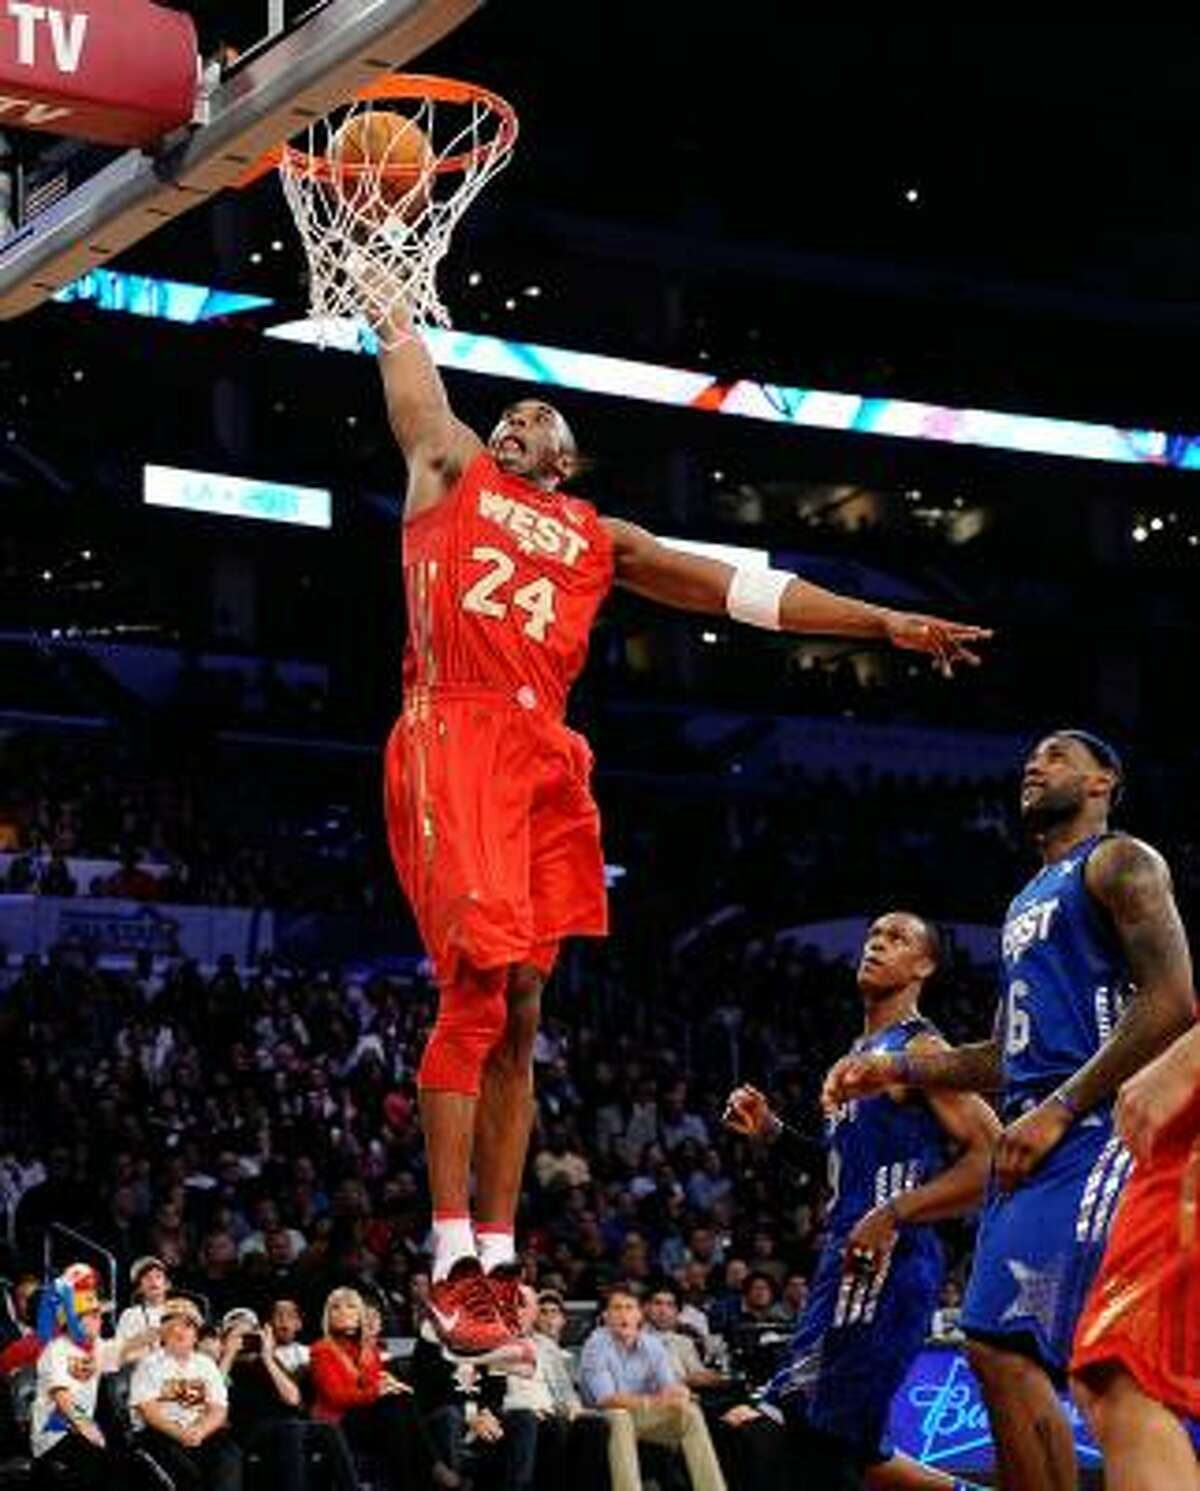 Lakers guard Kobe Bryant soars to the hoop for two of his game-high 37 points.